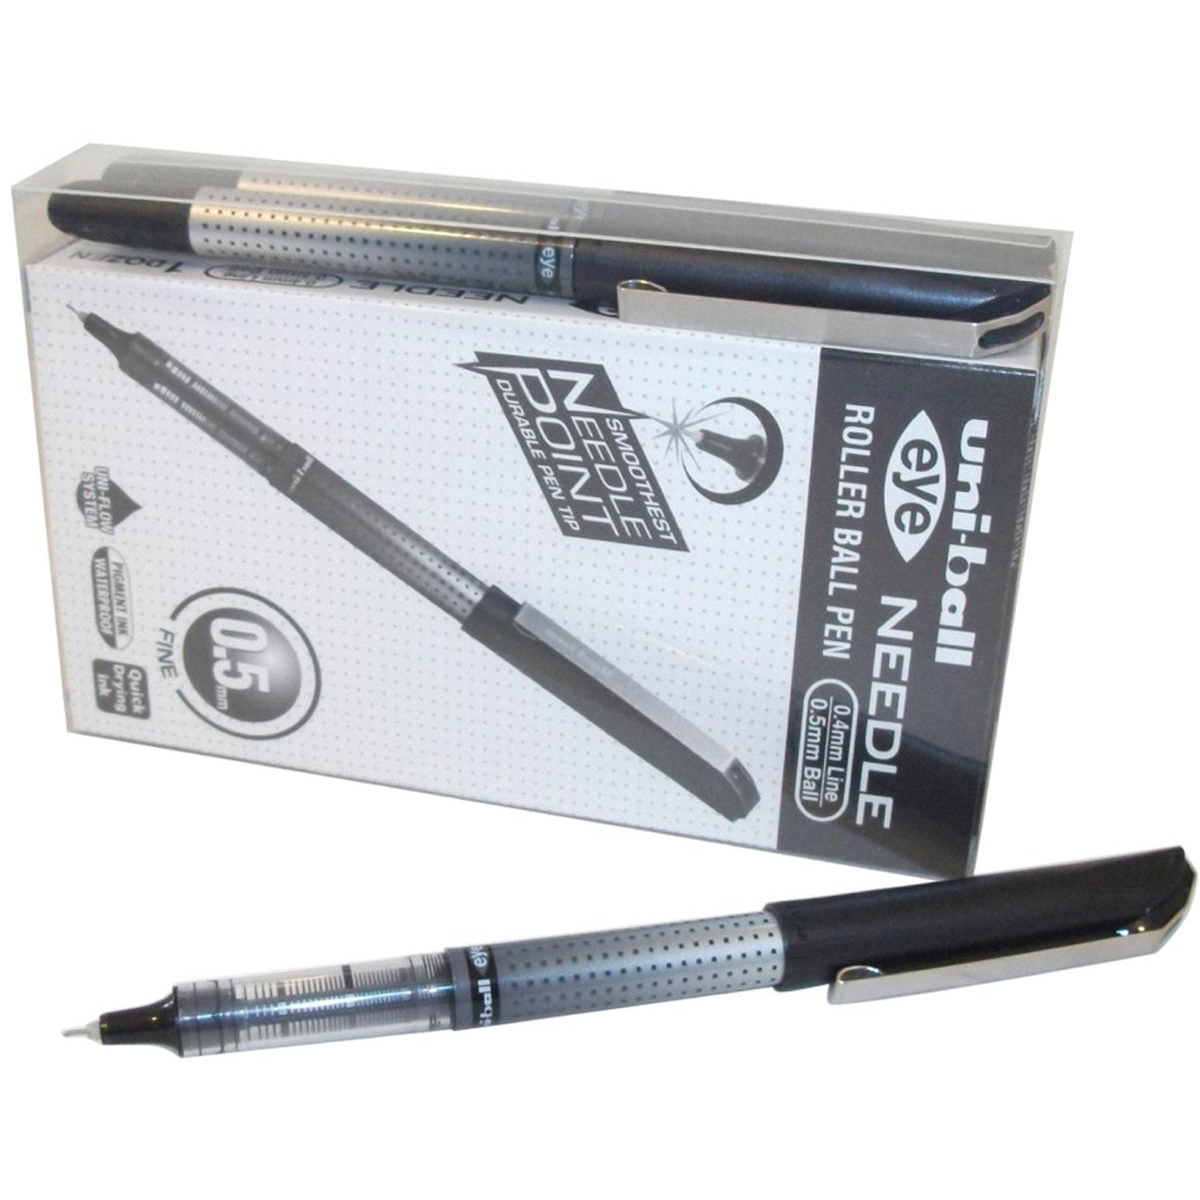 Uni-ball UB-185S Eye Needle Pen Stainless Steel Point Micro 0.5mm Tip Black Ref 153528382Pack 14 for 12